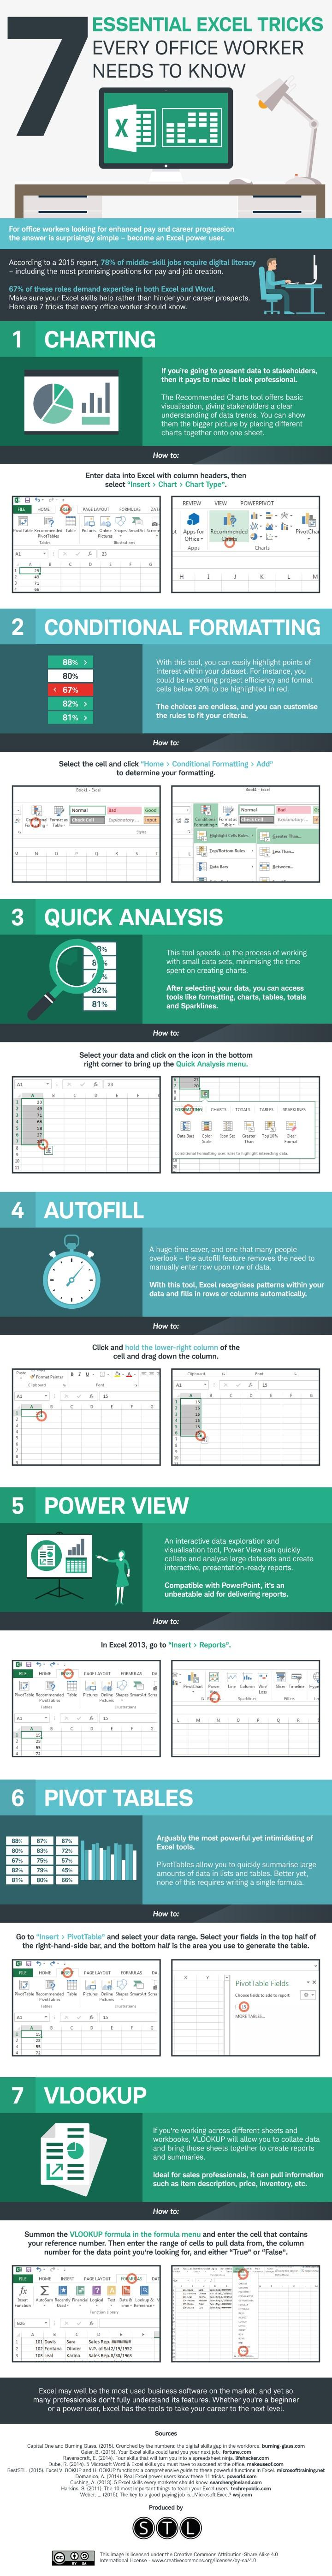 Excel tricks infographic